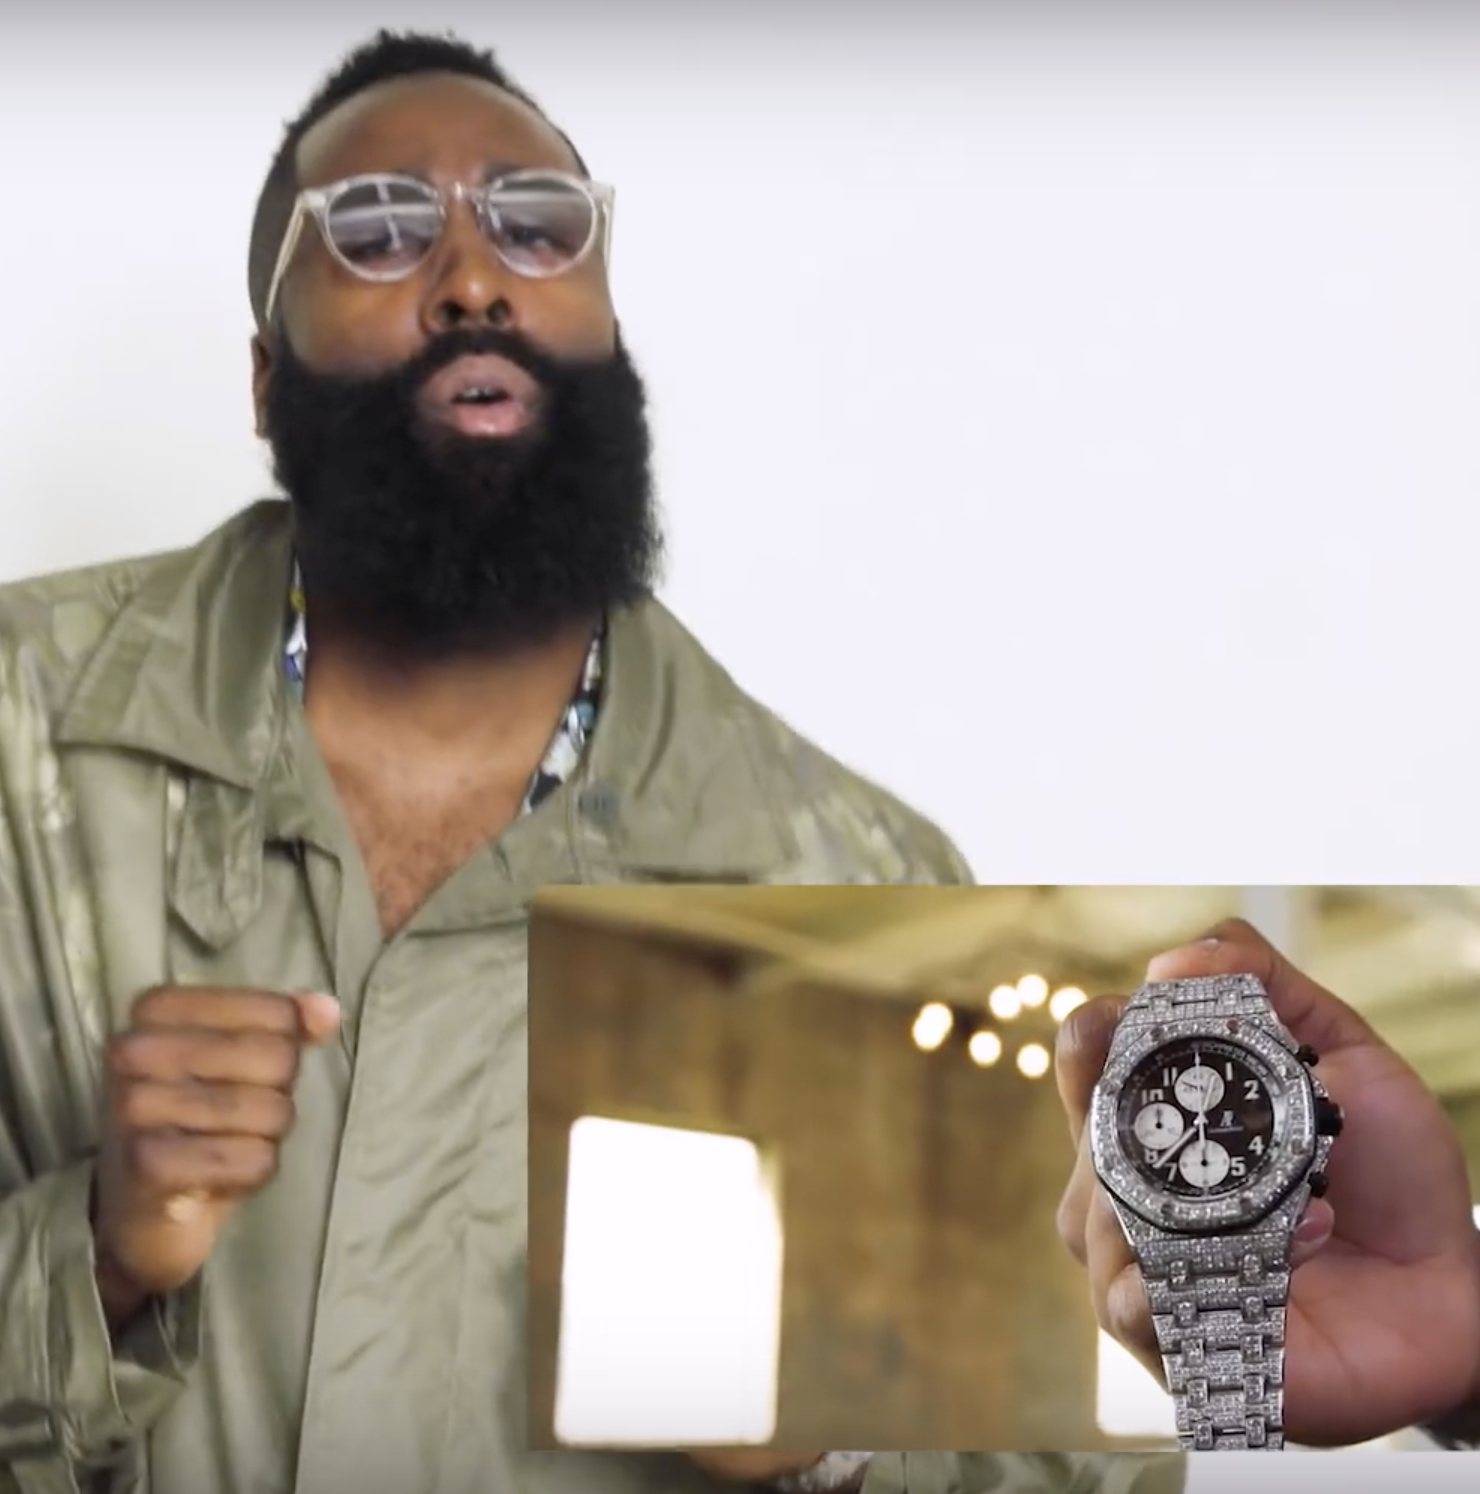 james harden, houston rockets, watches, Audemars Piguet, rolex, jewelry